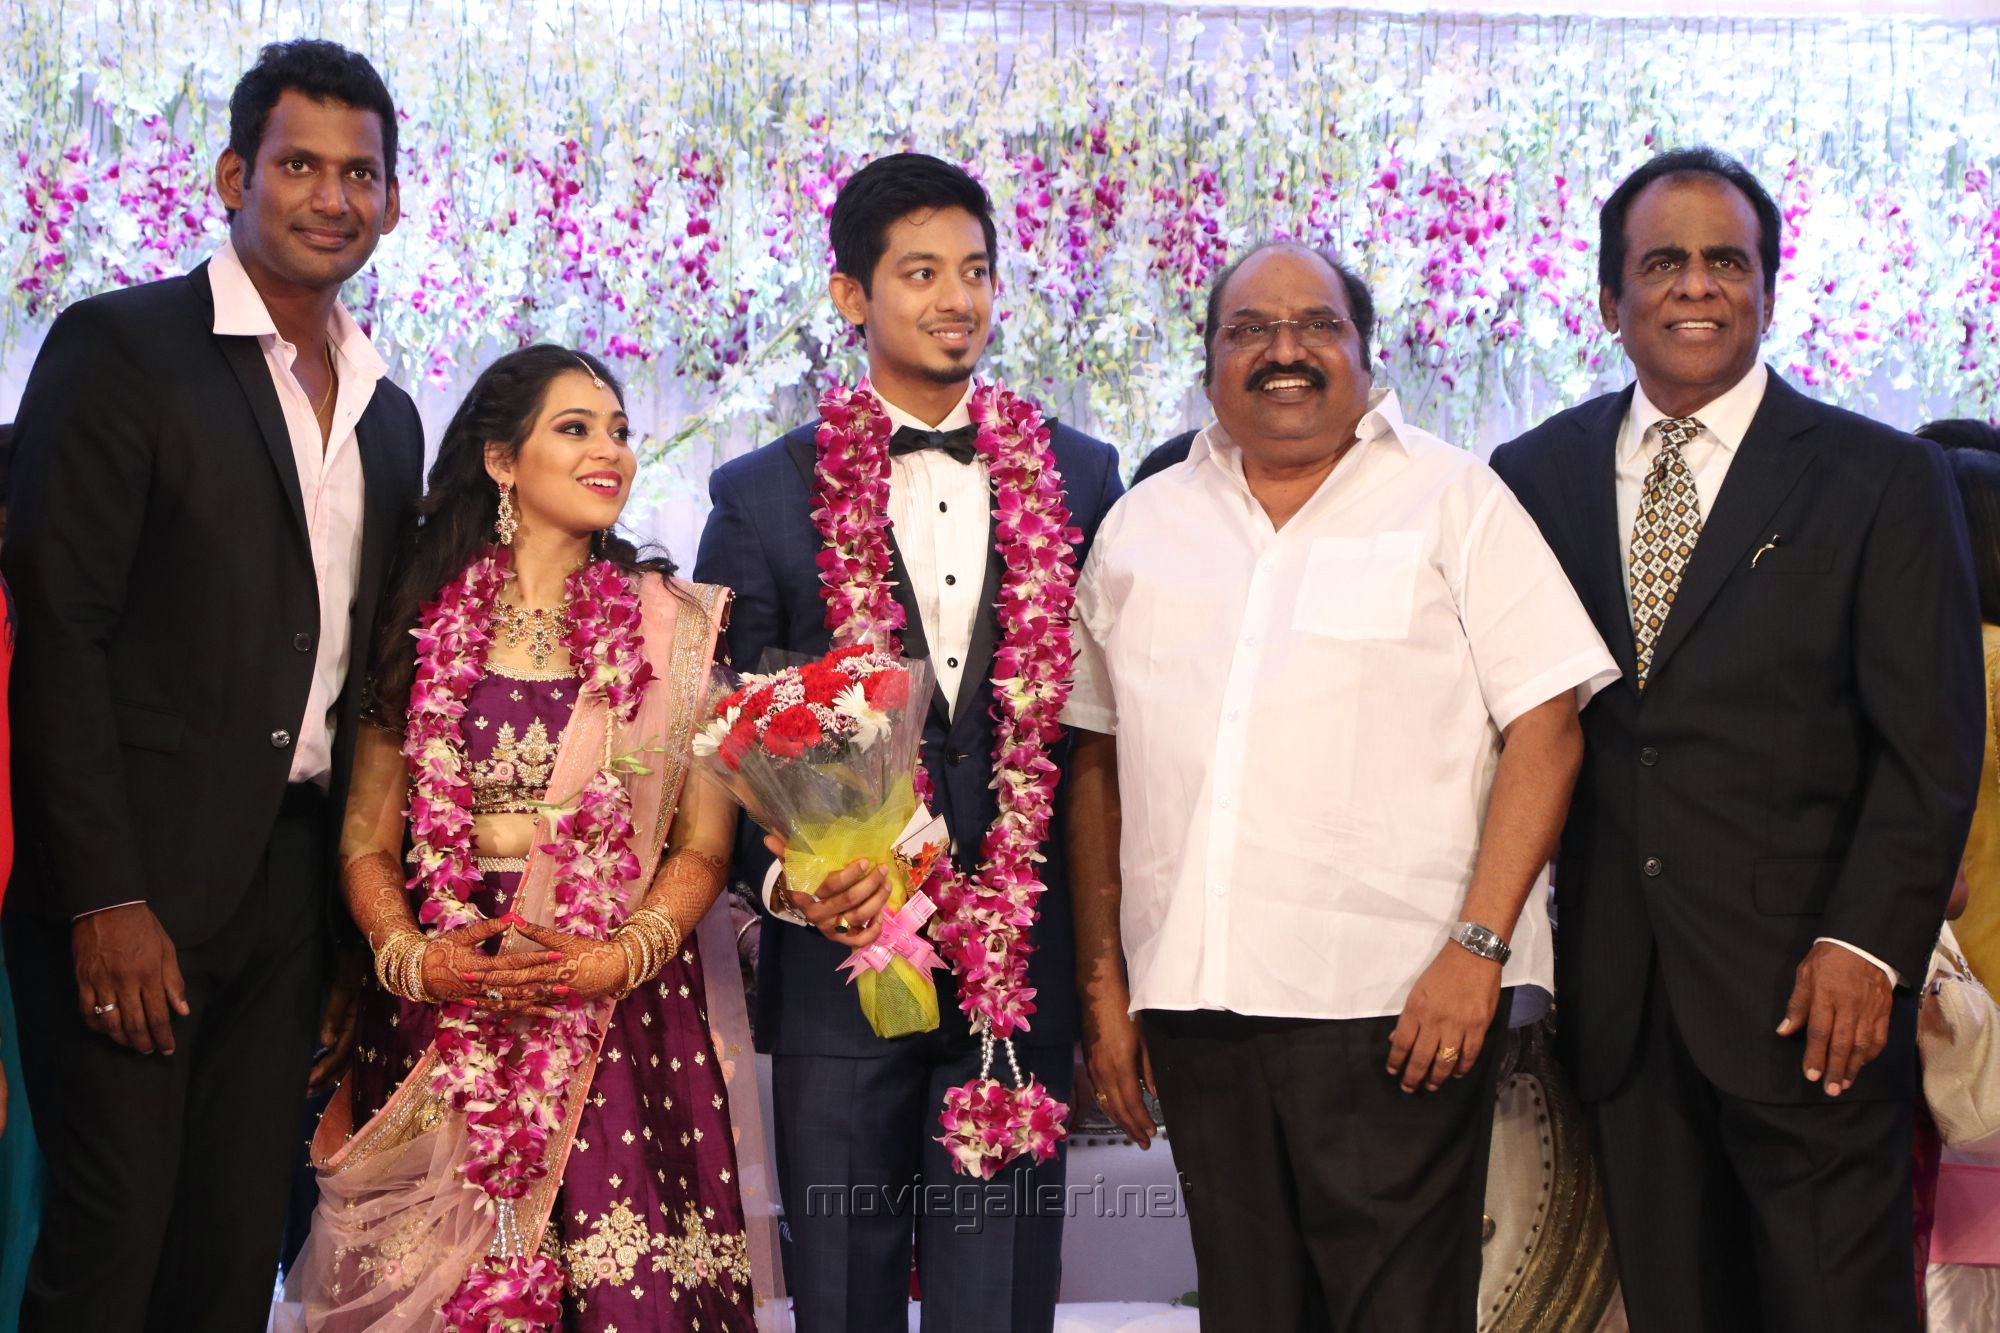 J anbazhagan anbu pictures of wedding